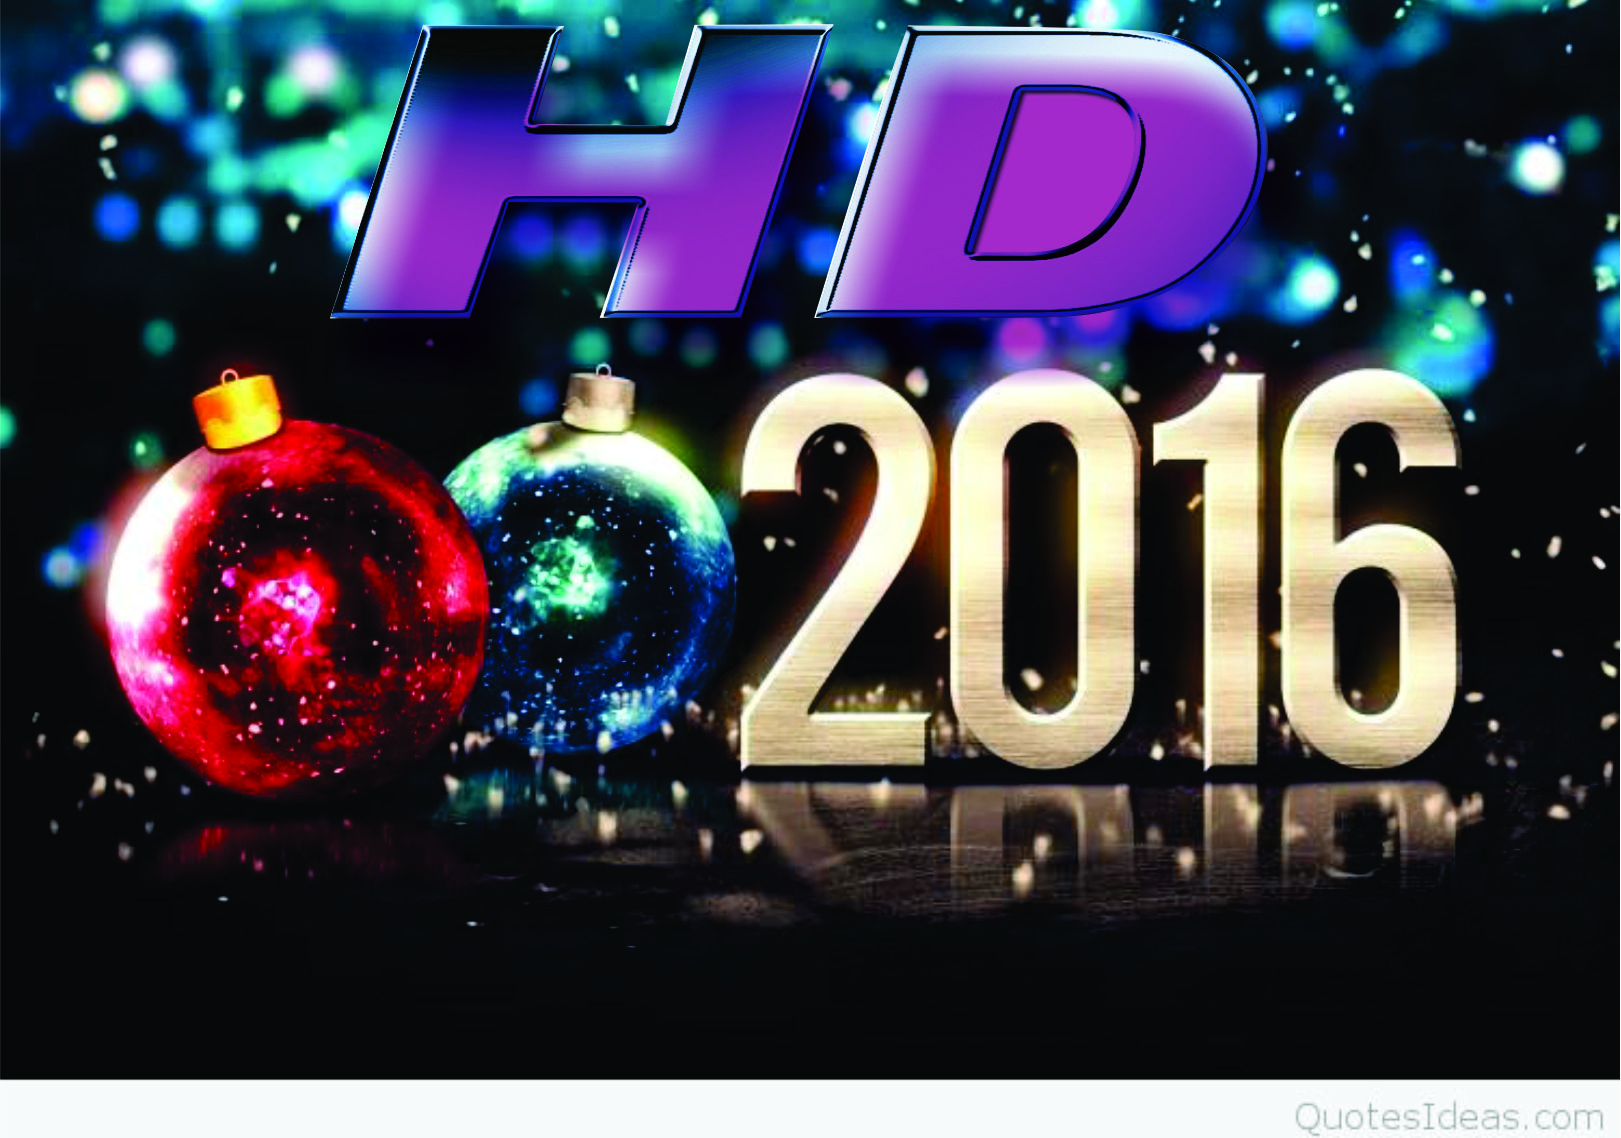 HD2016 6.0.1 Software Free Download